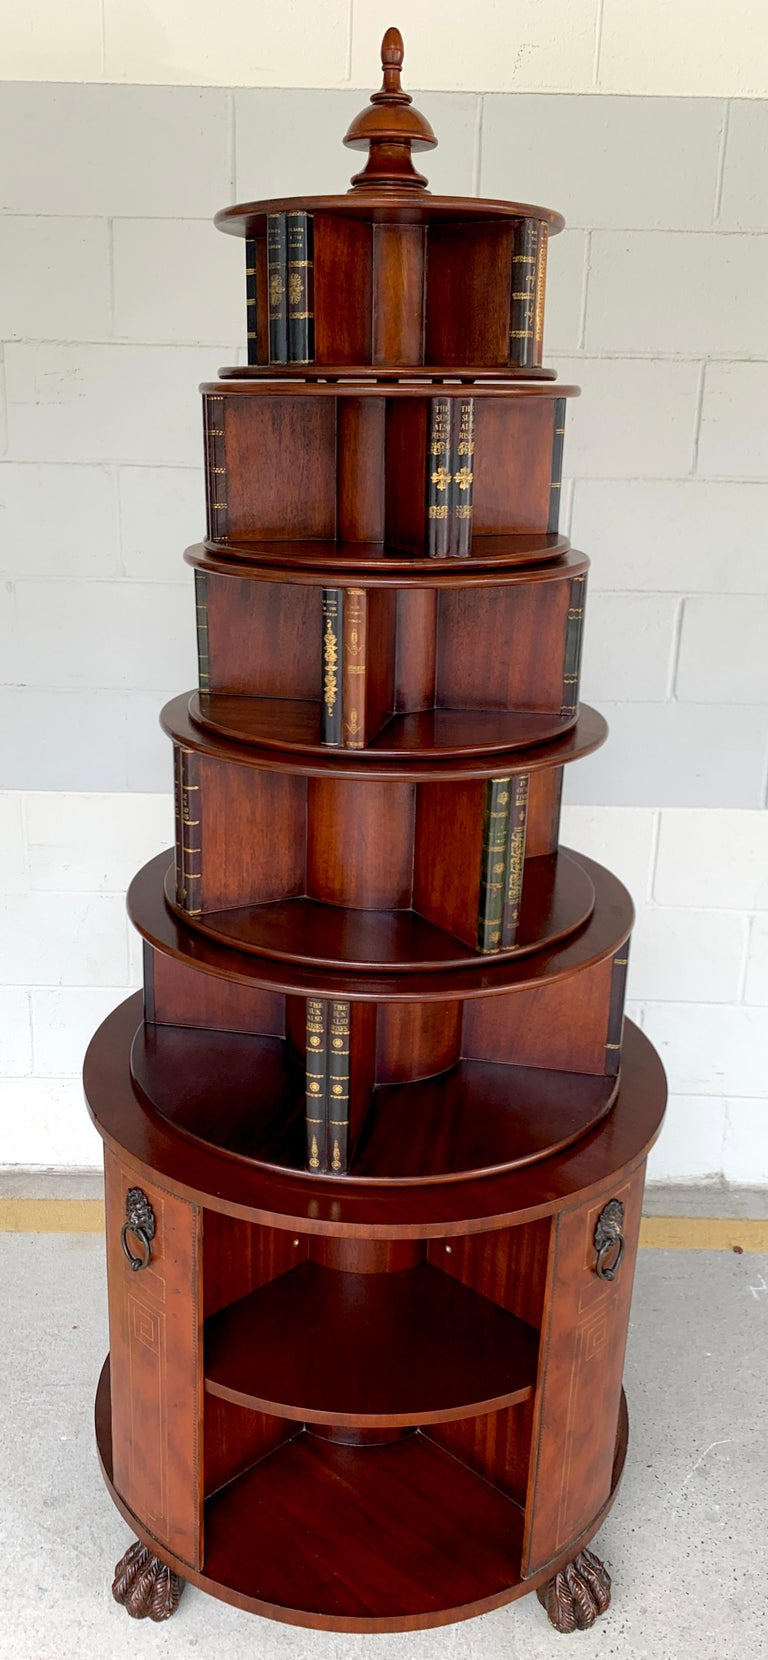 Georgian style six-tier faux book motif leather embossed revolving bookcase, impressive mahogany and embossed leather book motif revolving bookcase consisting of six graduating tiers.